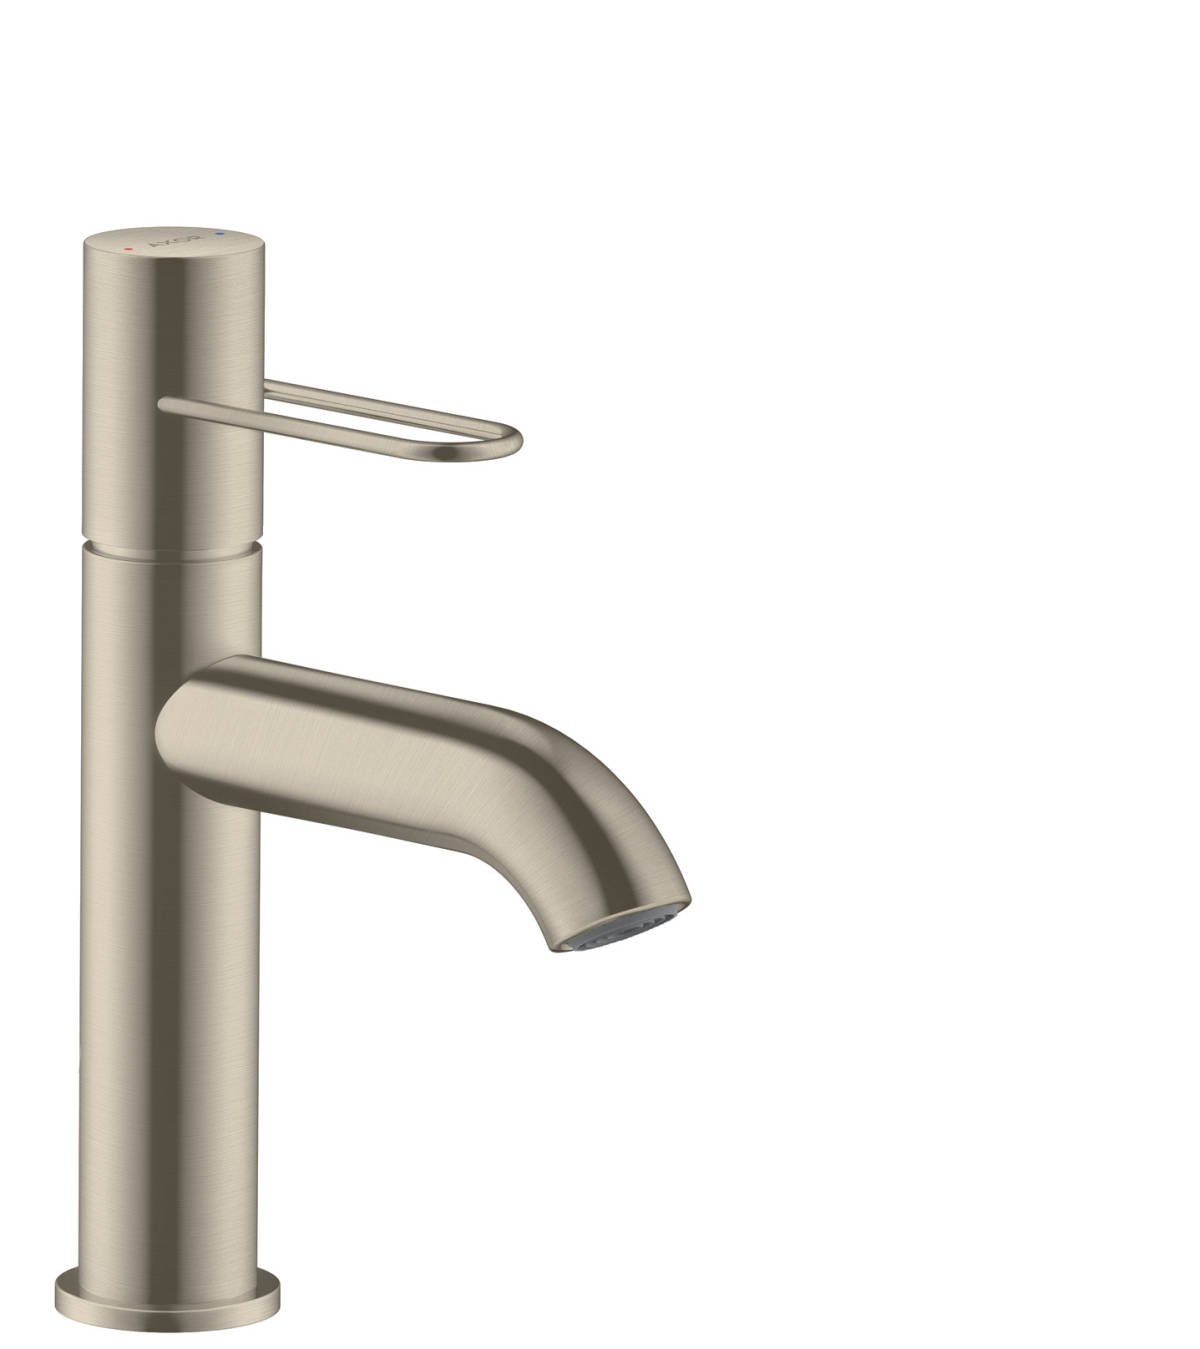 Single lever basin mixer 100 with loop handle and waste set, Brushed Nickel, 38026820